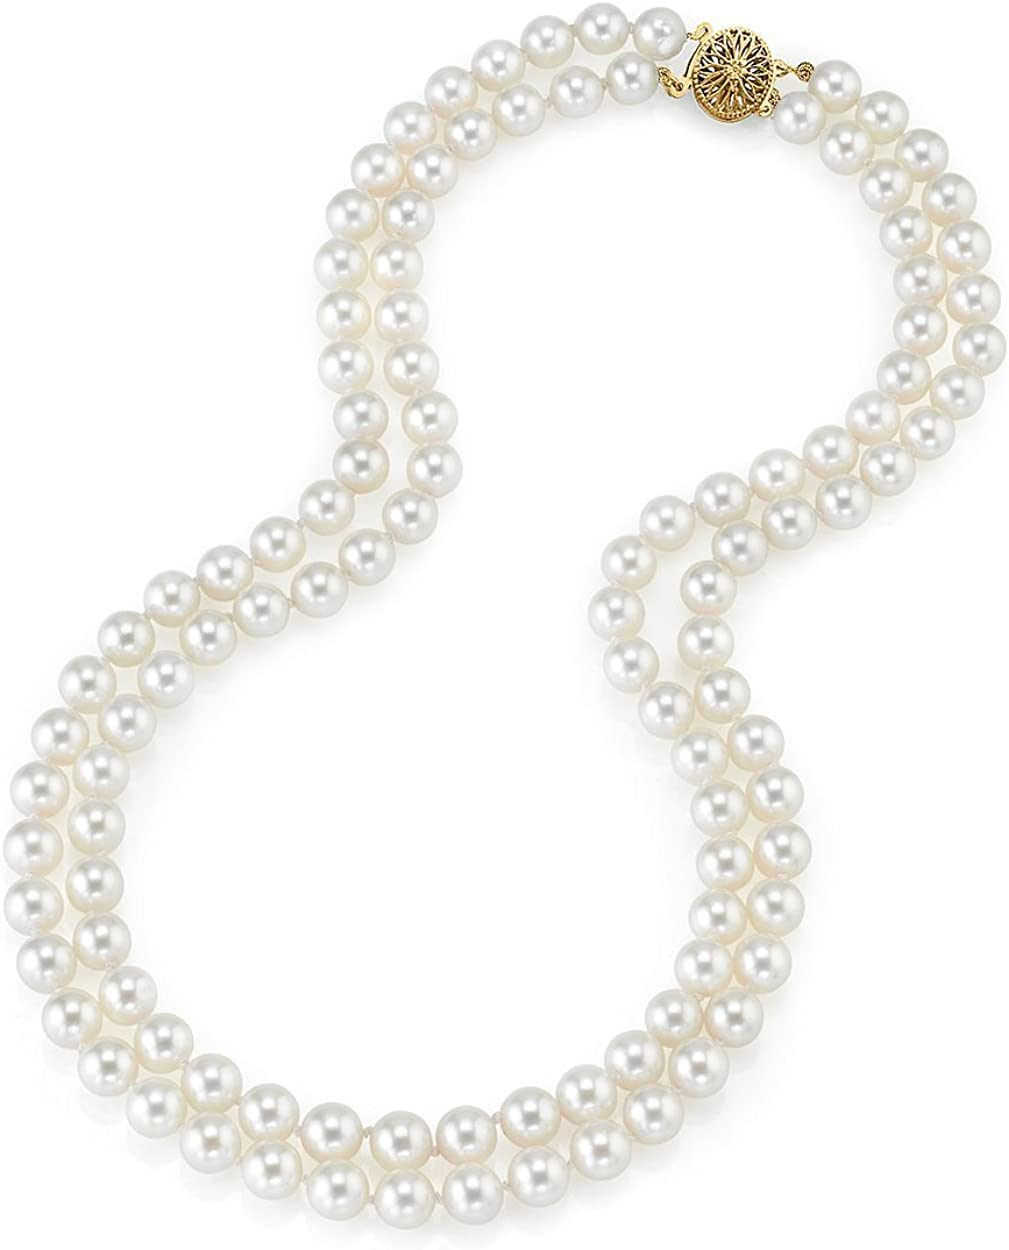 THE PEARL SOURCE 14K Gold Round Genuine White Double Japanese Akoya Saltwater Cultured Pearl Necklace in 18-19